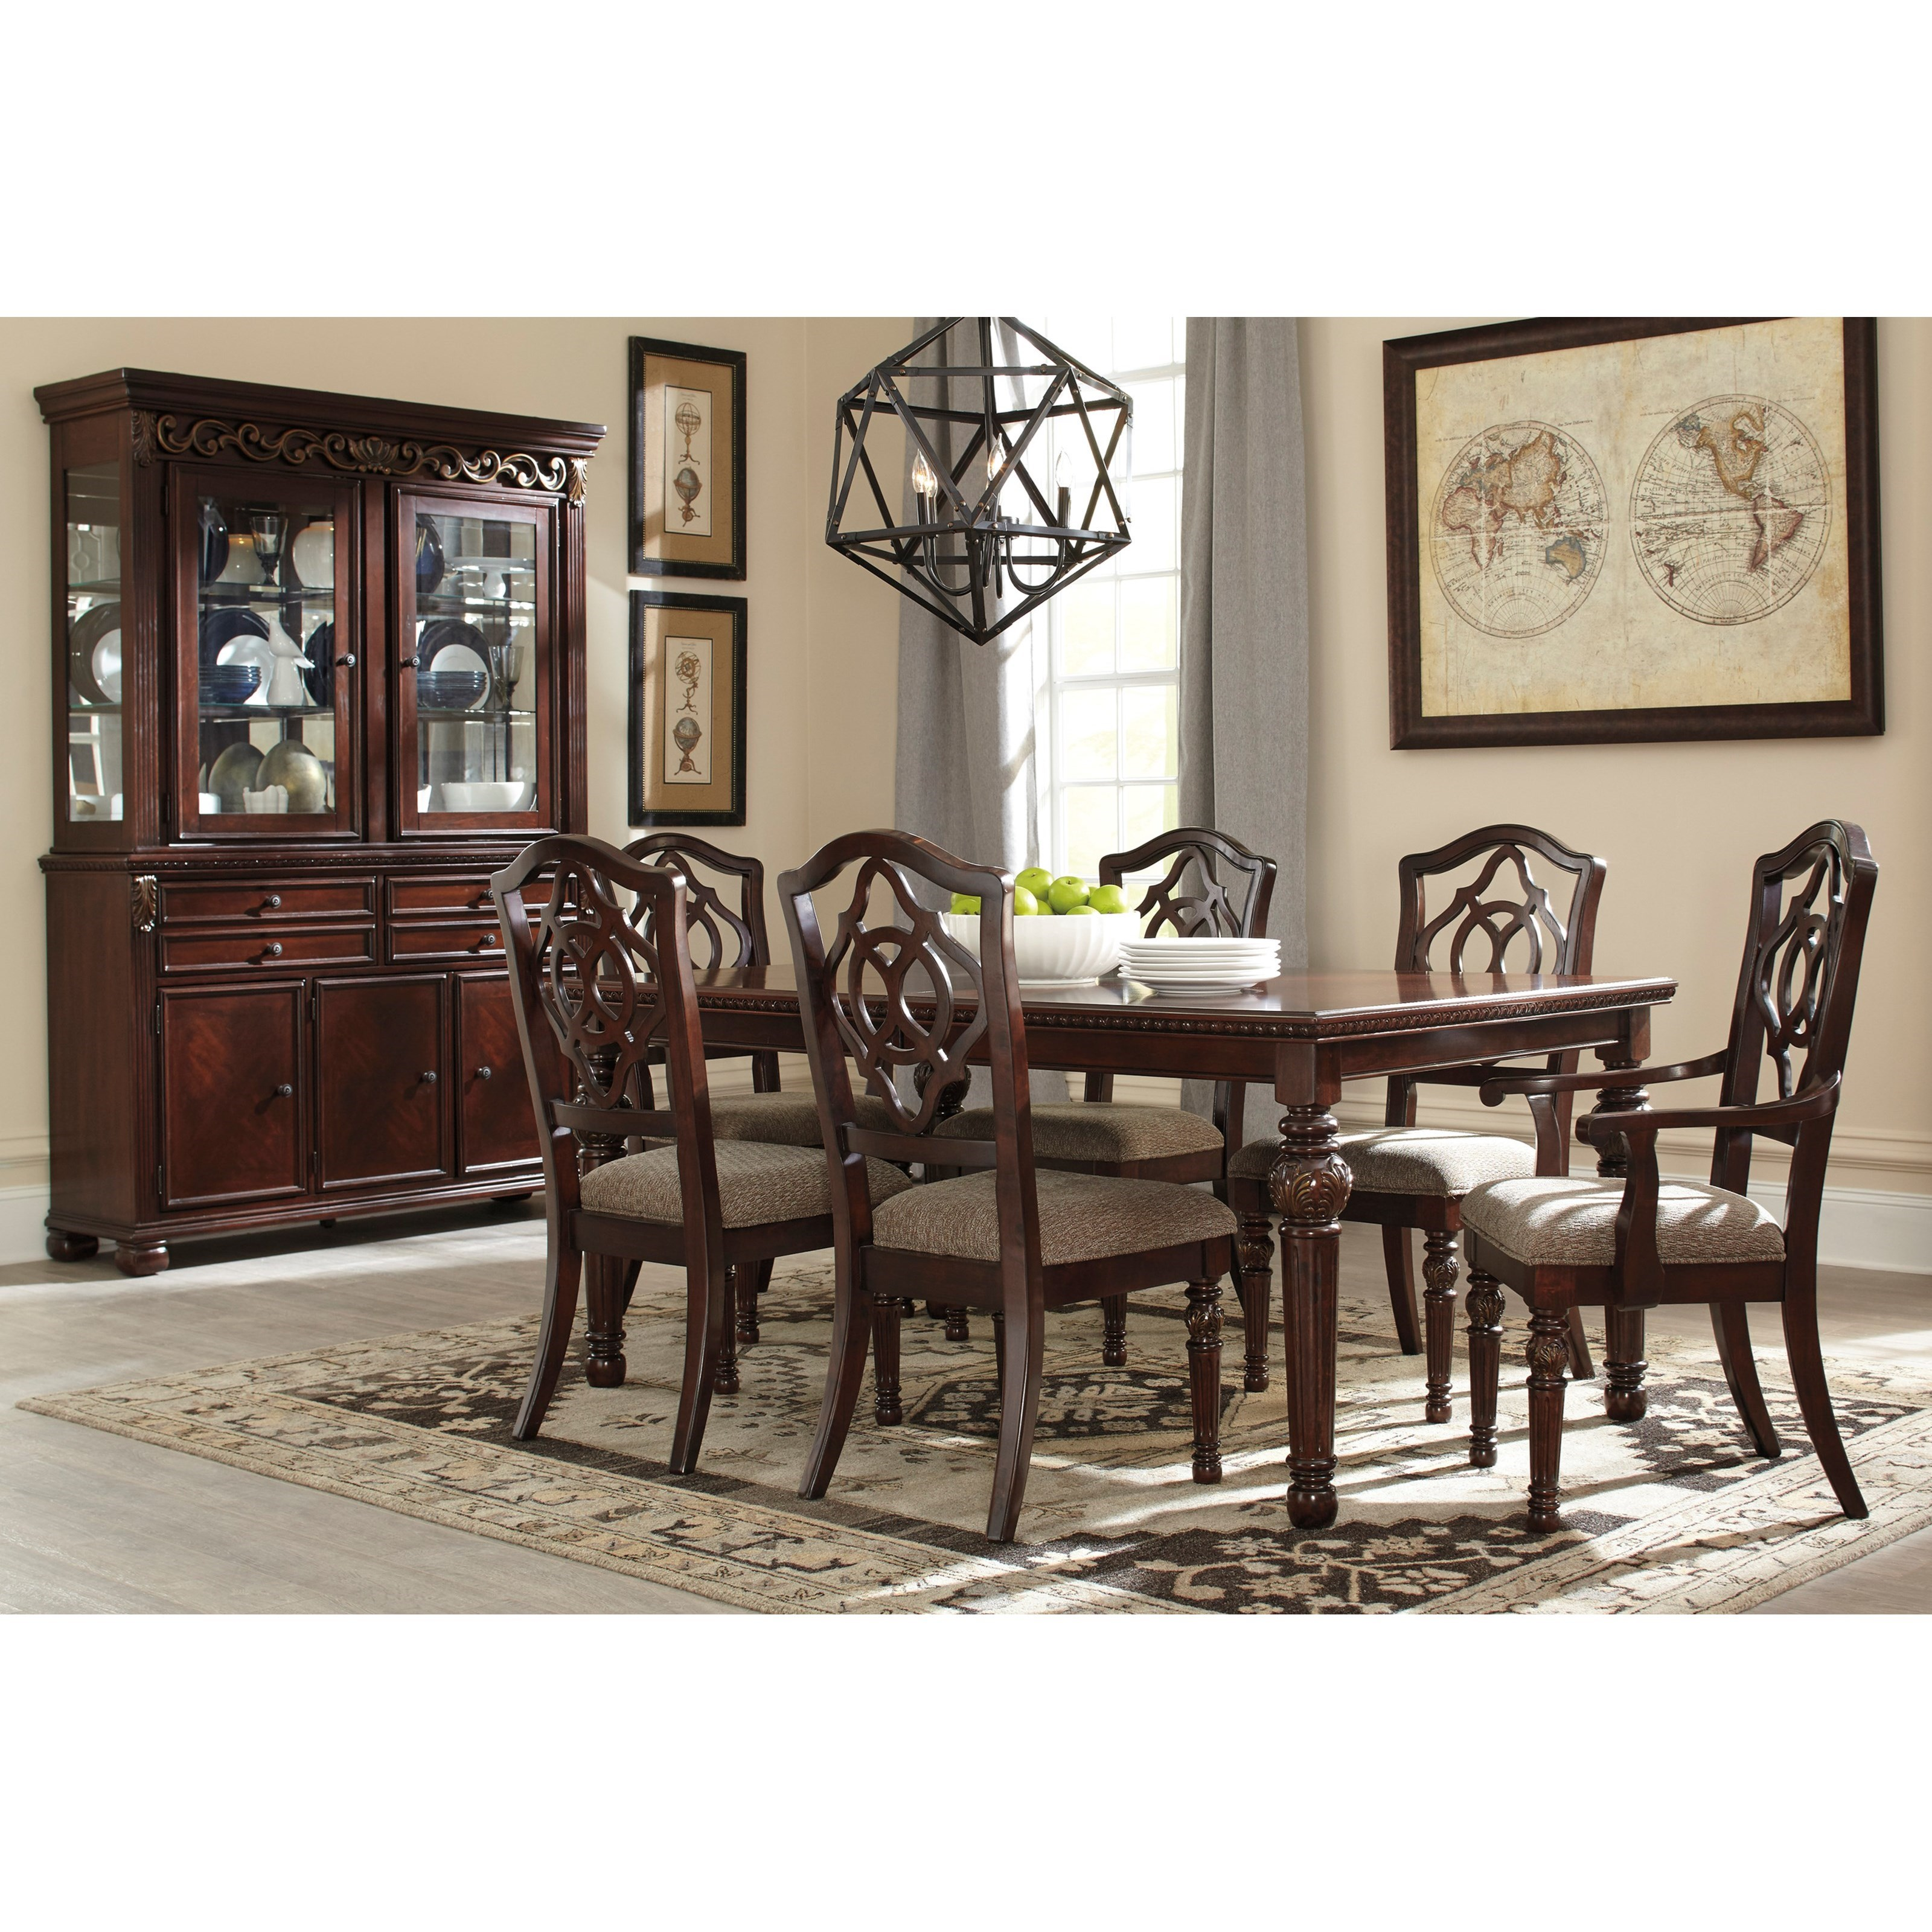 signature design by ashley leahlyn formal dining room. Black Bedroom Furniture Sets. Home Design Ideas